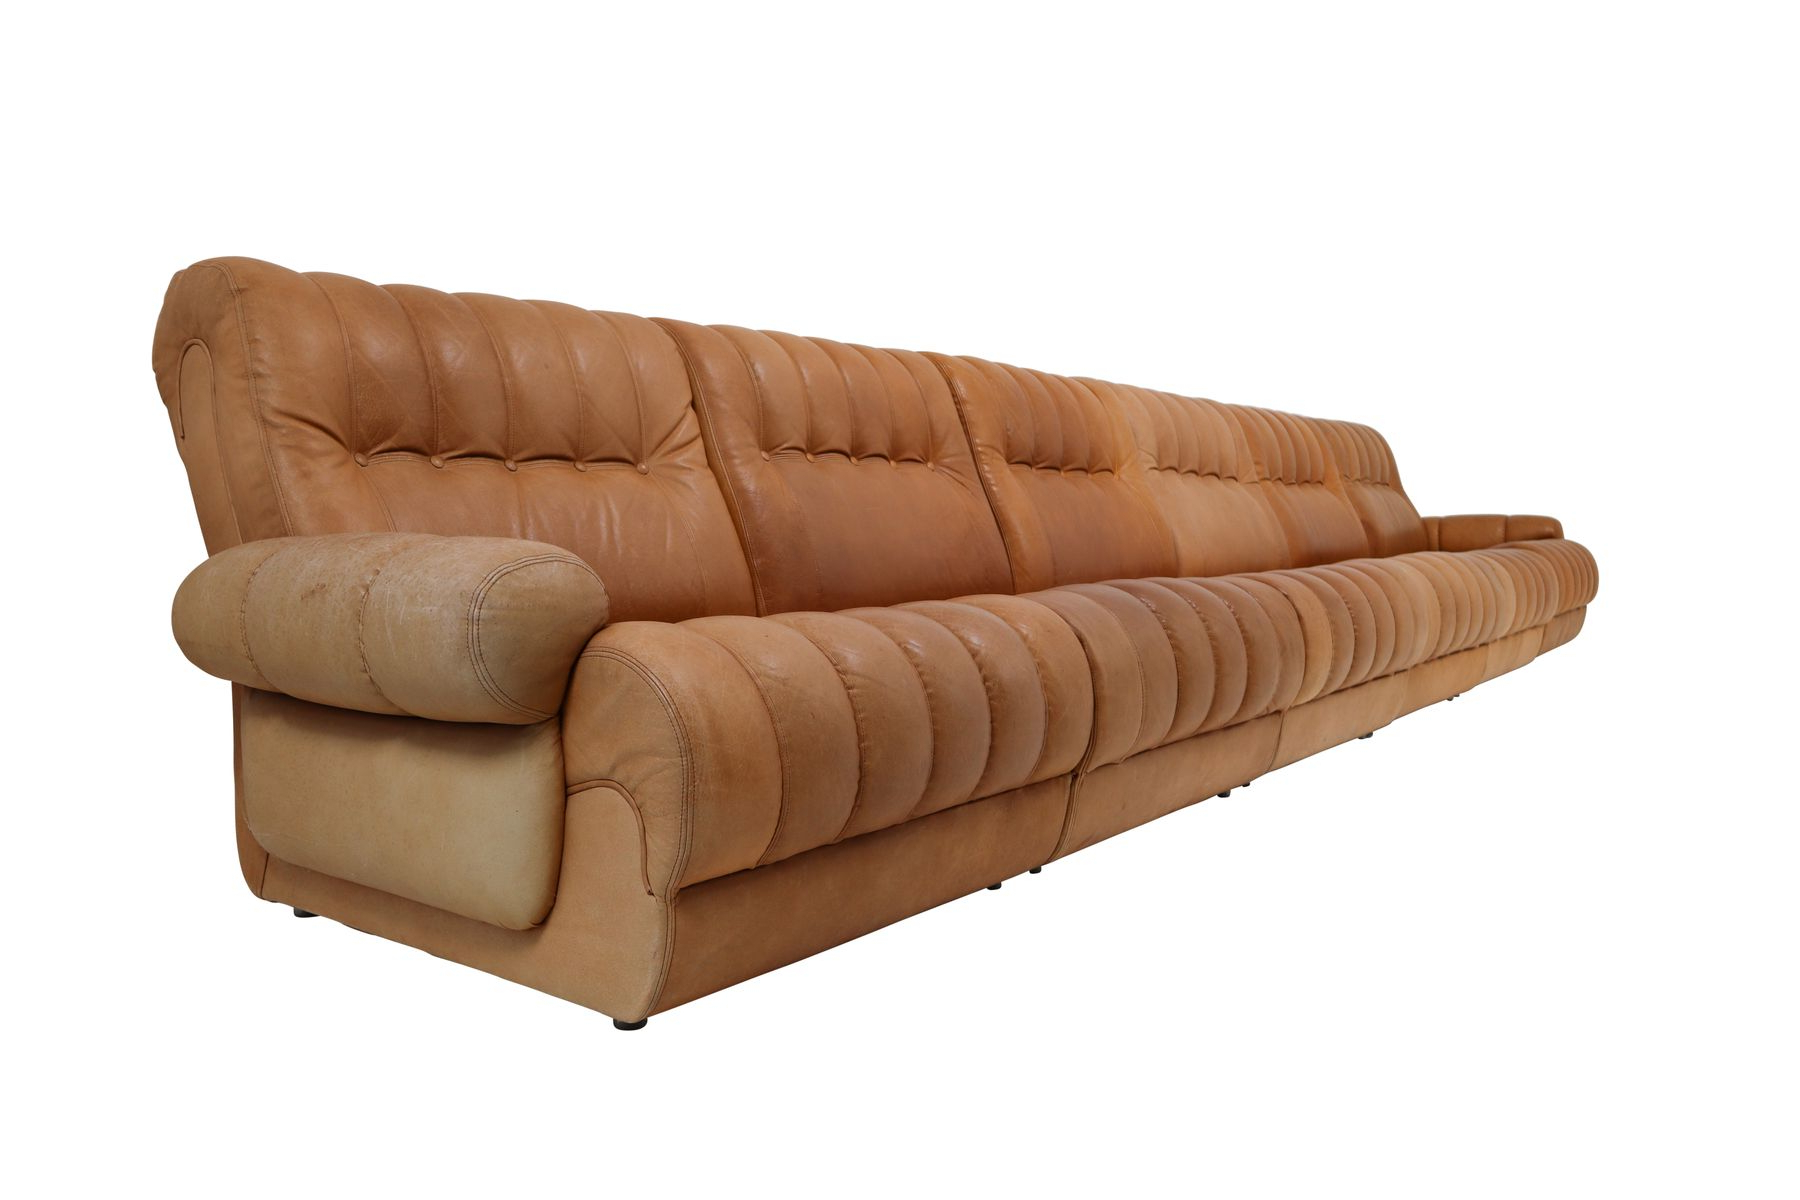 2019 Cognac Leather Sectional Sofa (Gallery 14 of 20)